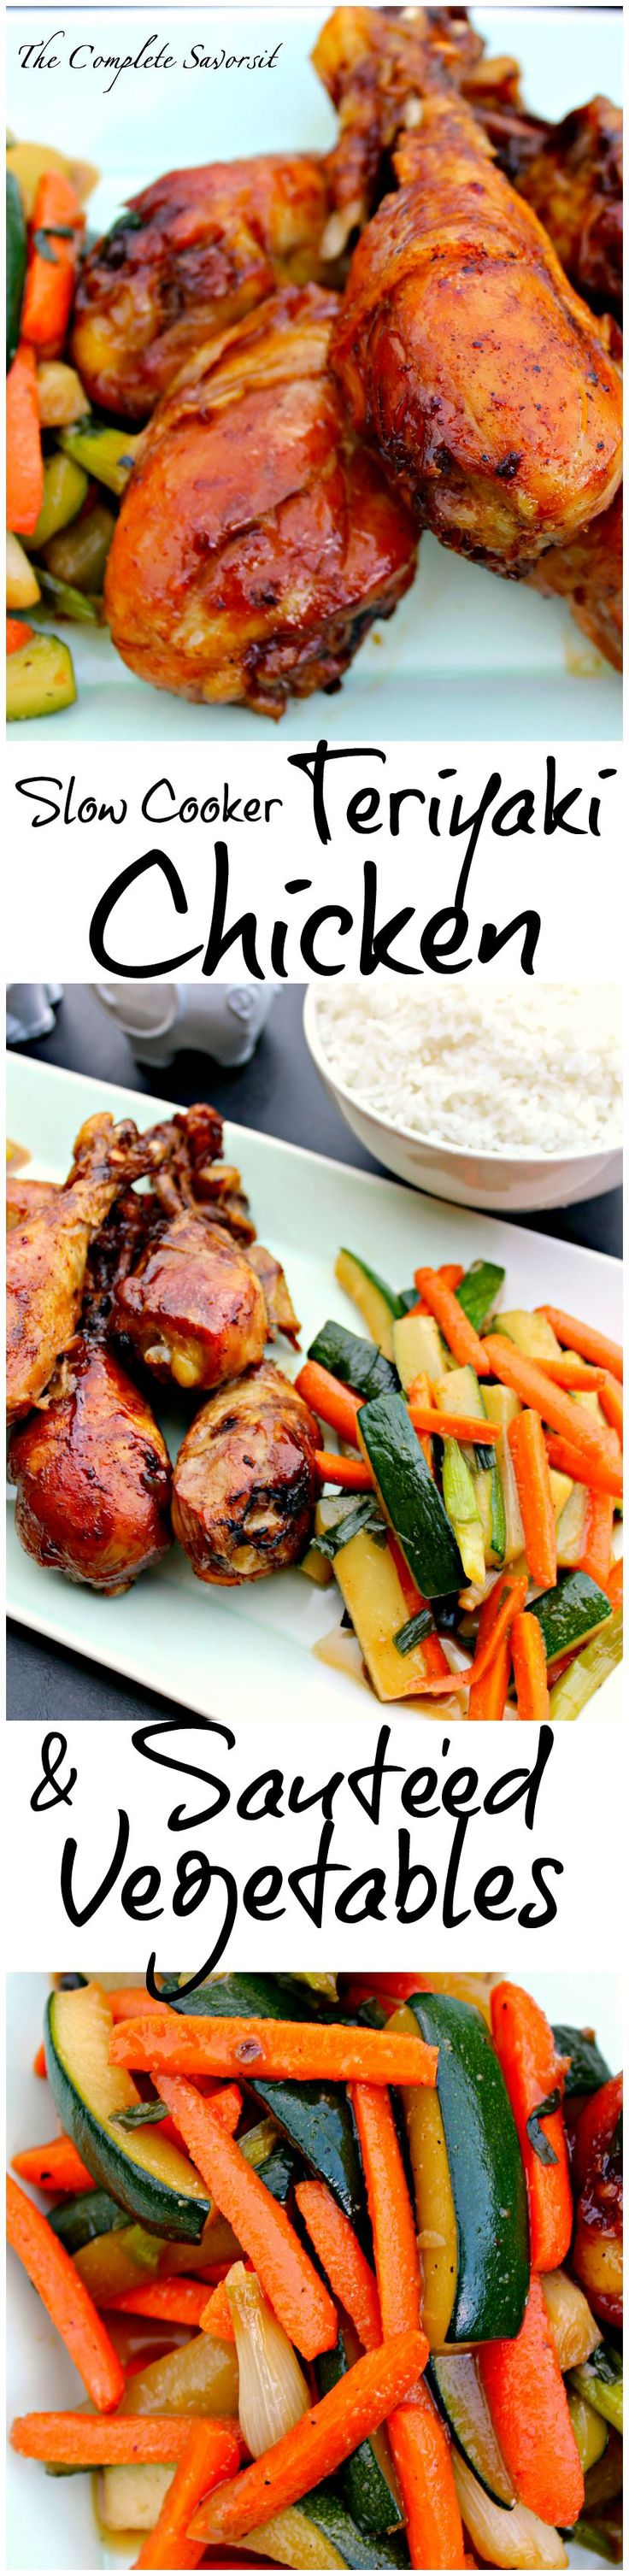 Slow Cooker Teriyaki Chicken Drummers and Sautéed Vegetables ~ The Complete Savorist